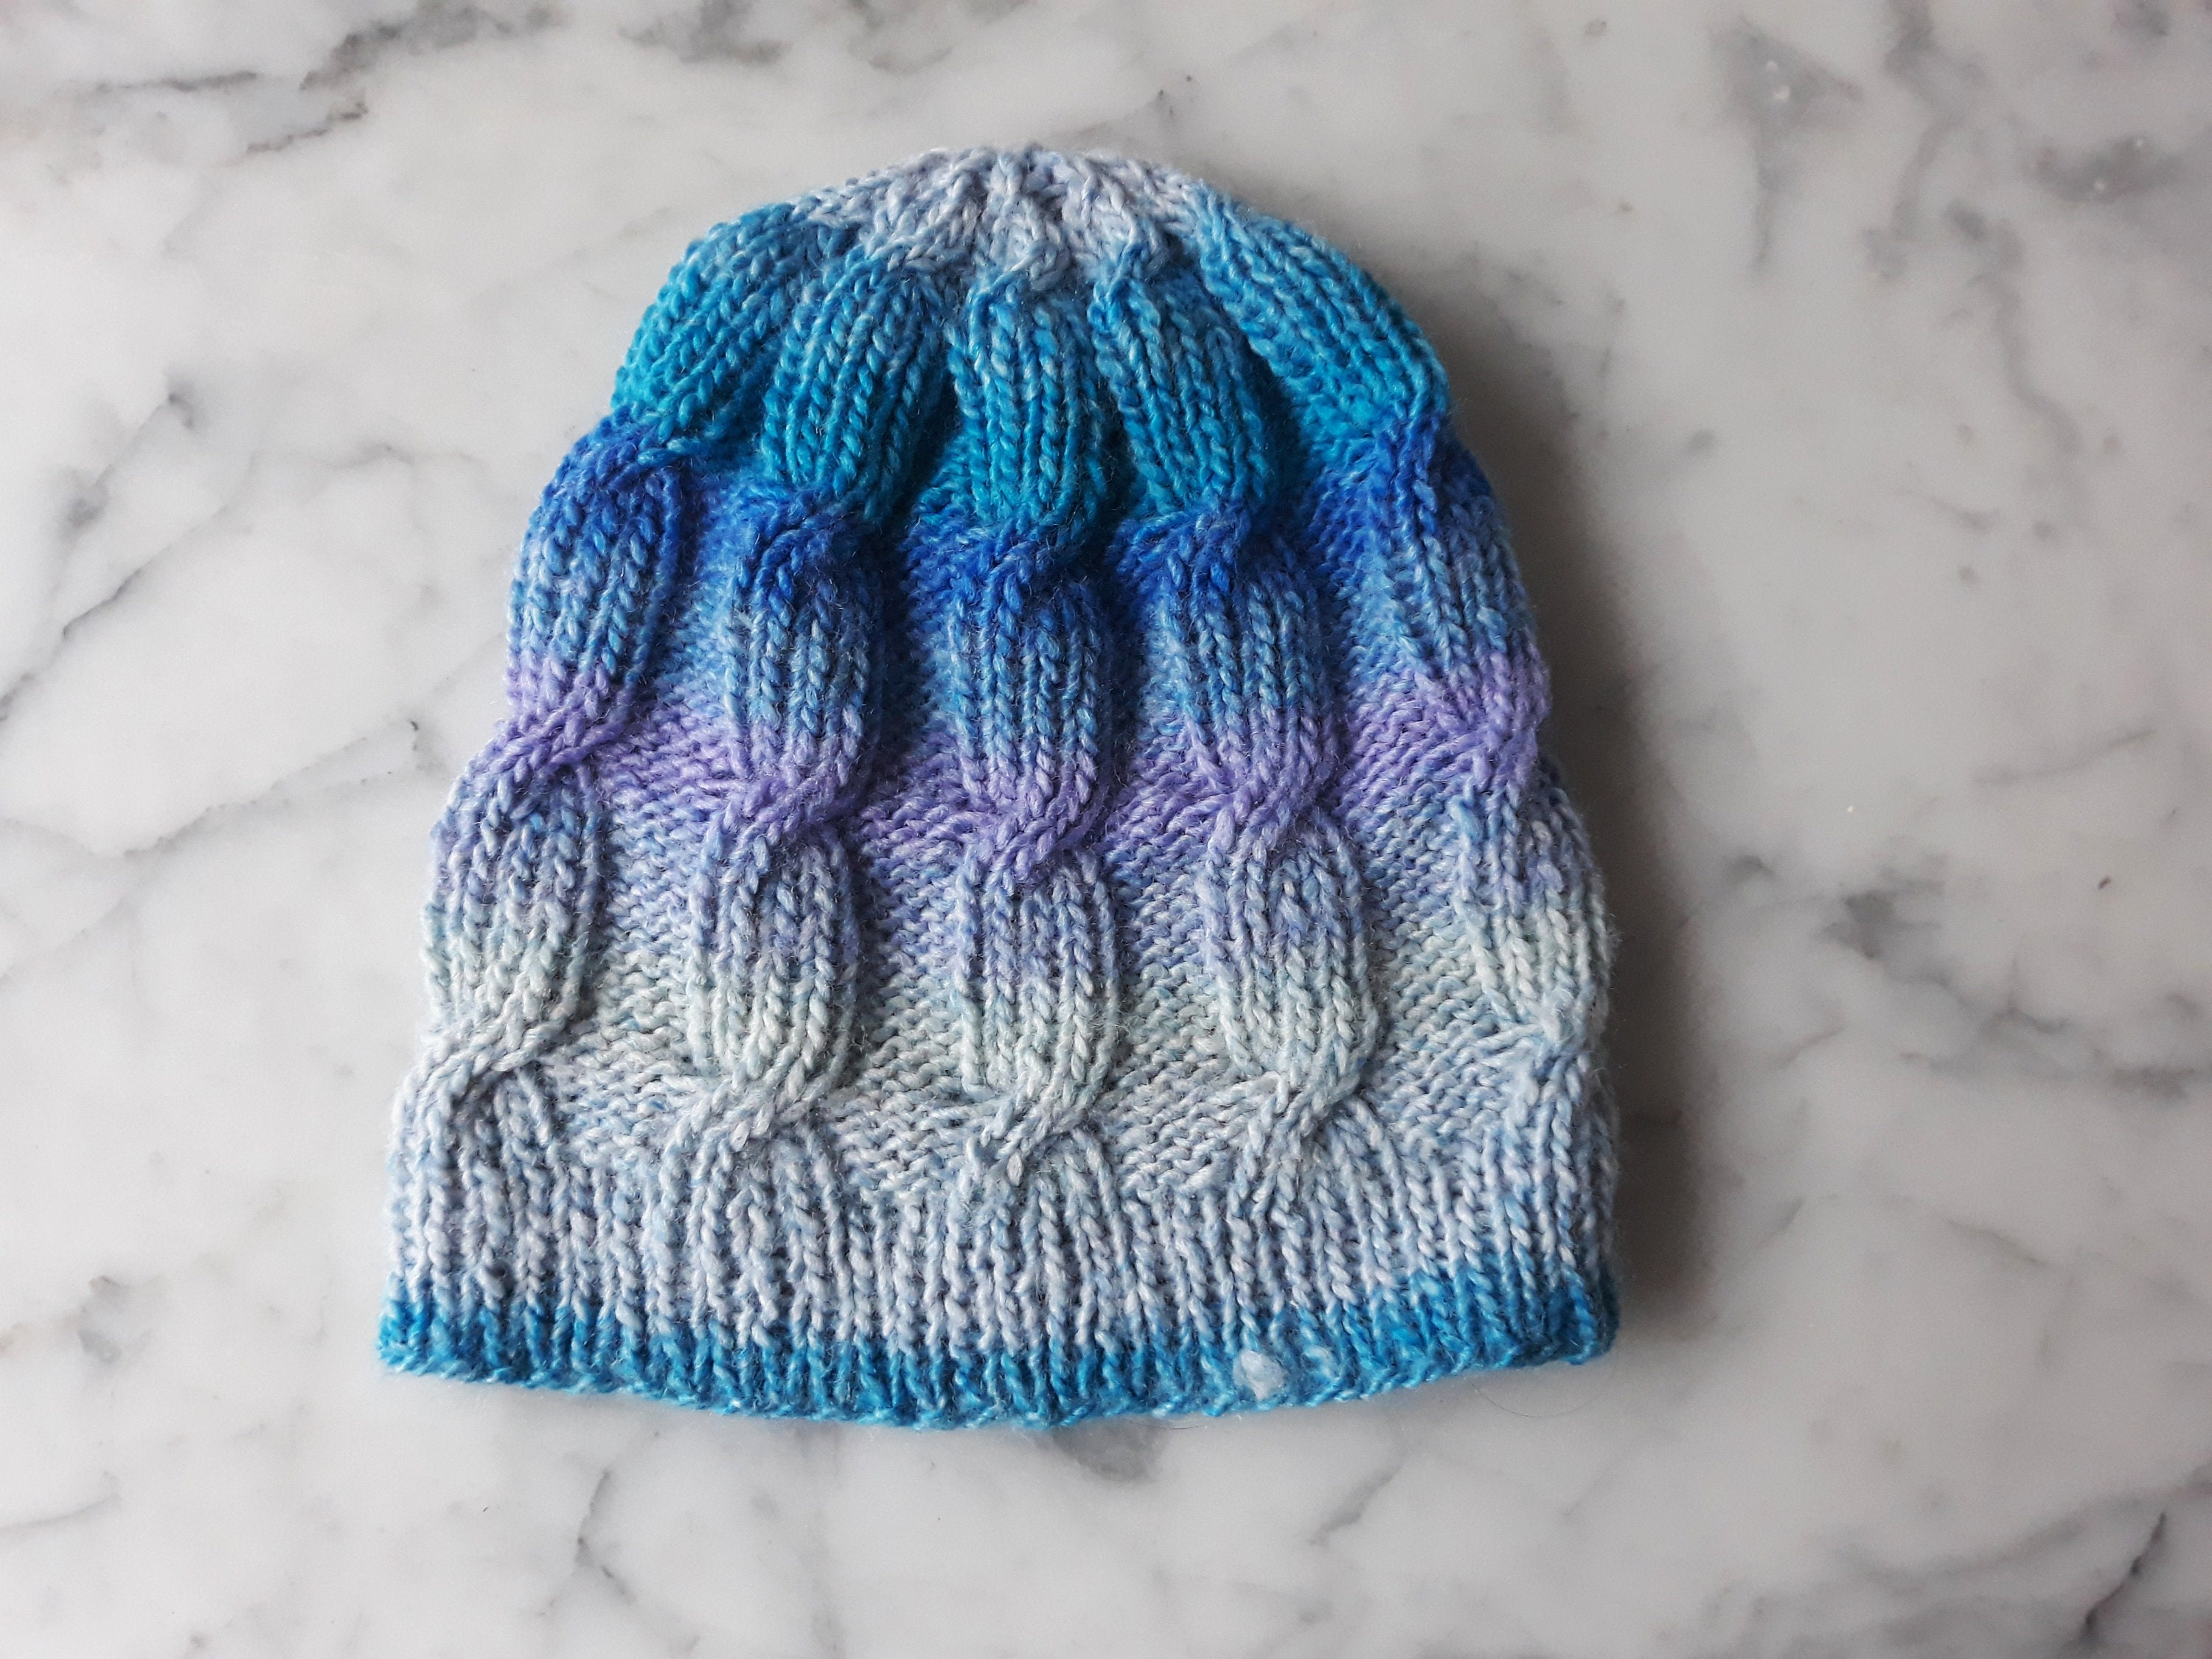 Cable knit beanie  handknit hat in acrylic yarn. Blue purple beanie ... 75d457cc290